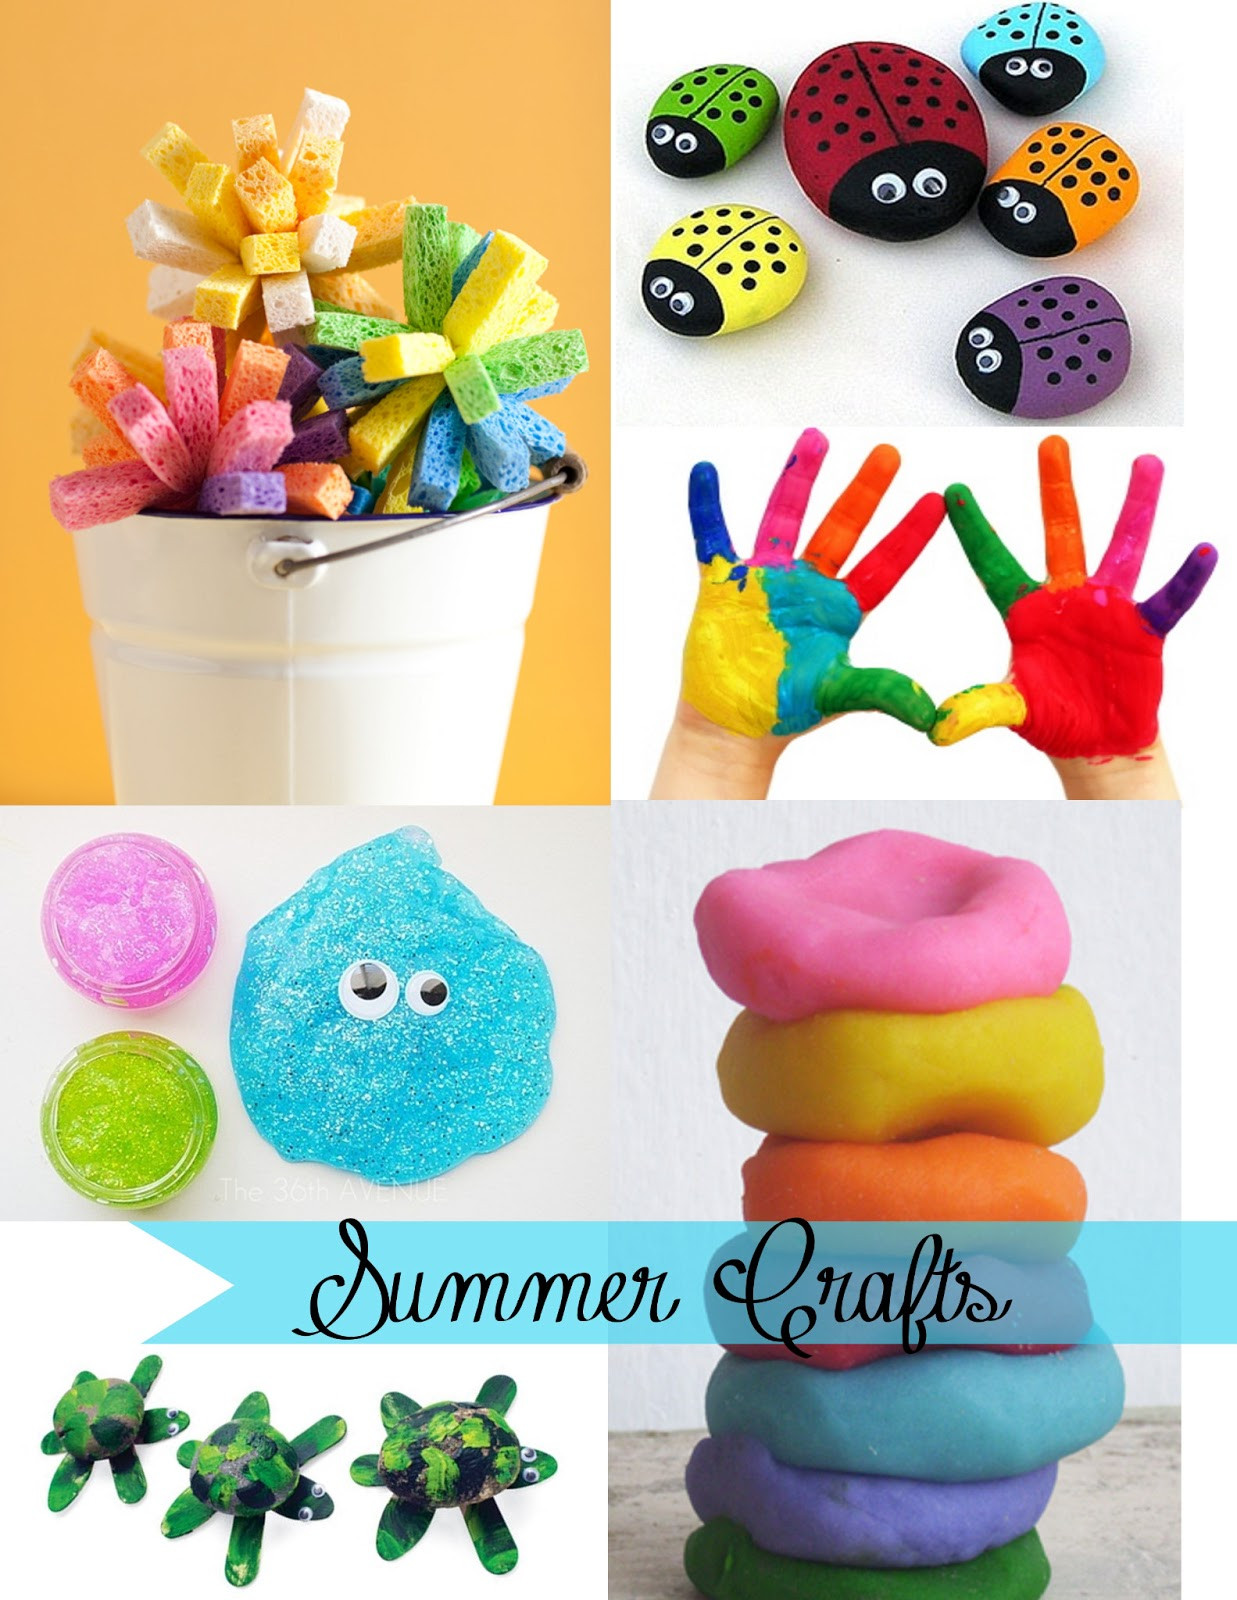 Best ideas about Unique Crafts For Kids . Save or Pin Being creative to keep my sanity Summer Crafts for Kids Now.